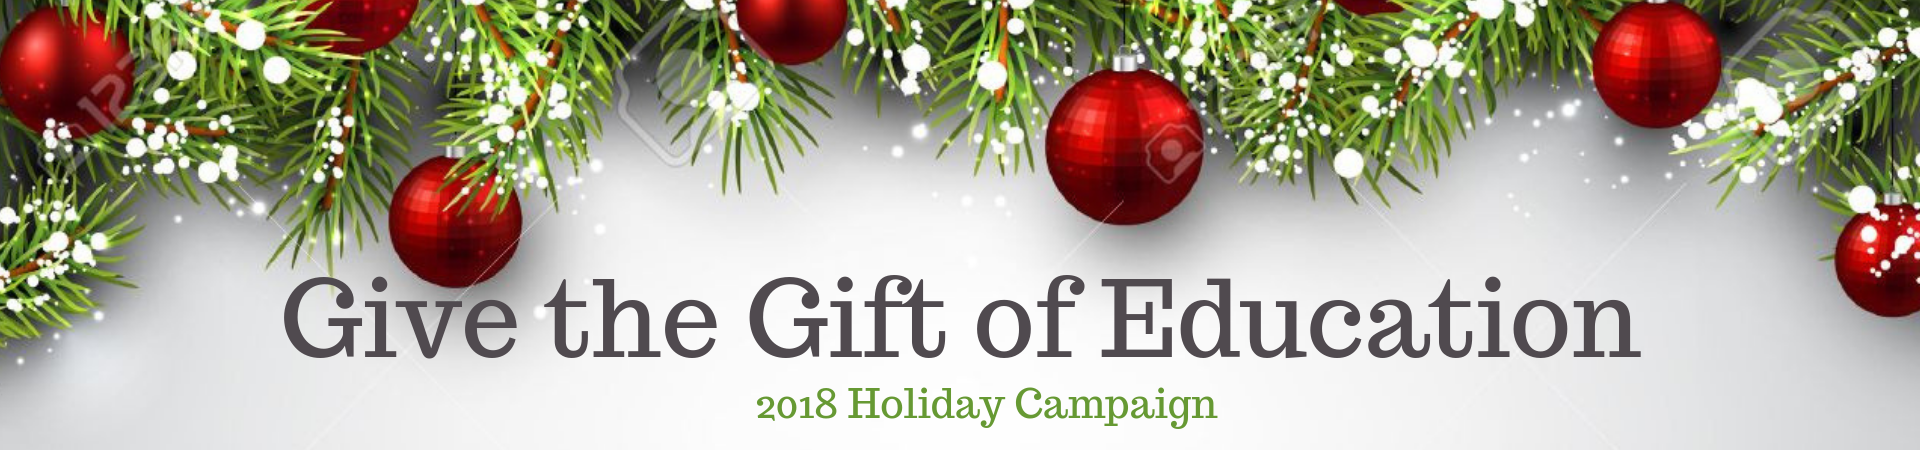 Give the Gift of Education (4)